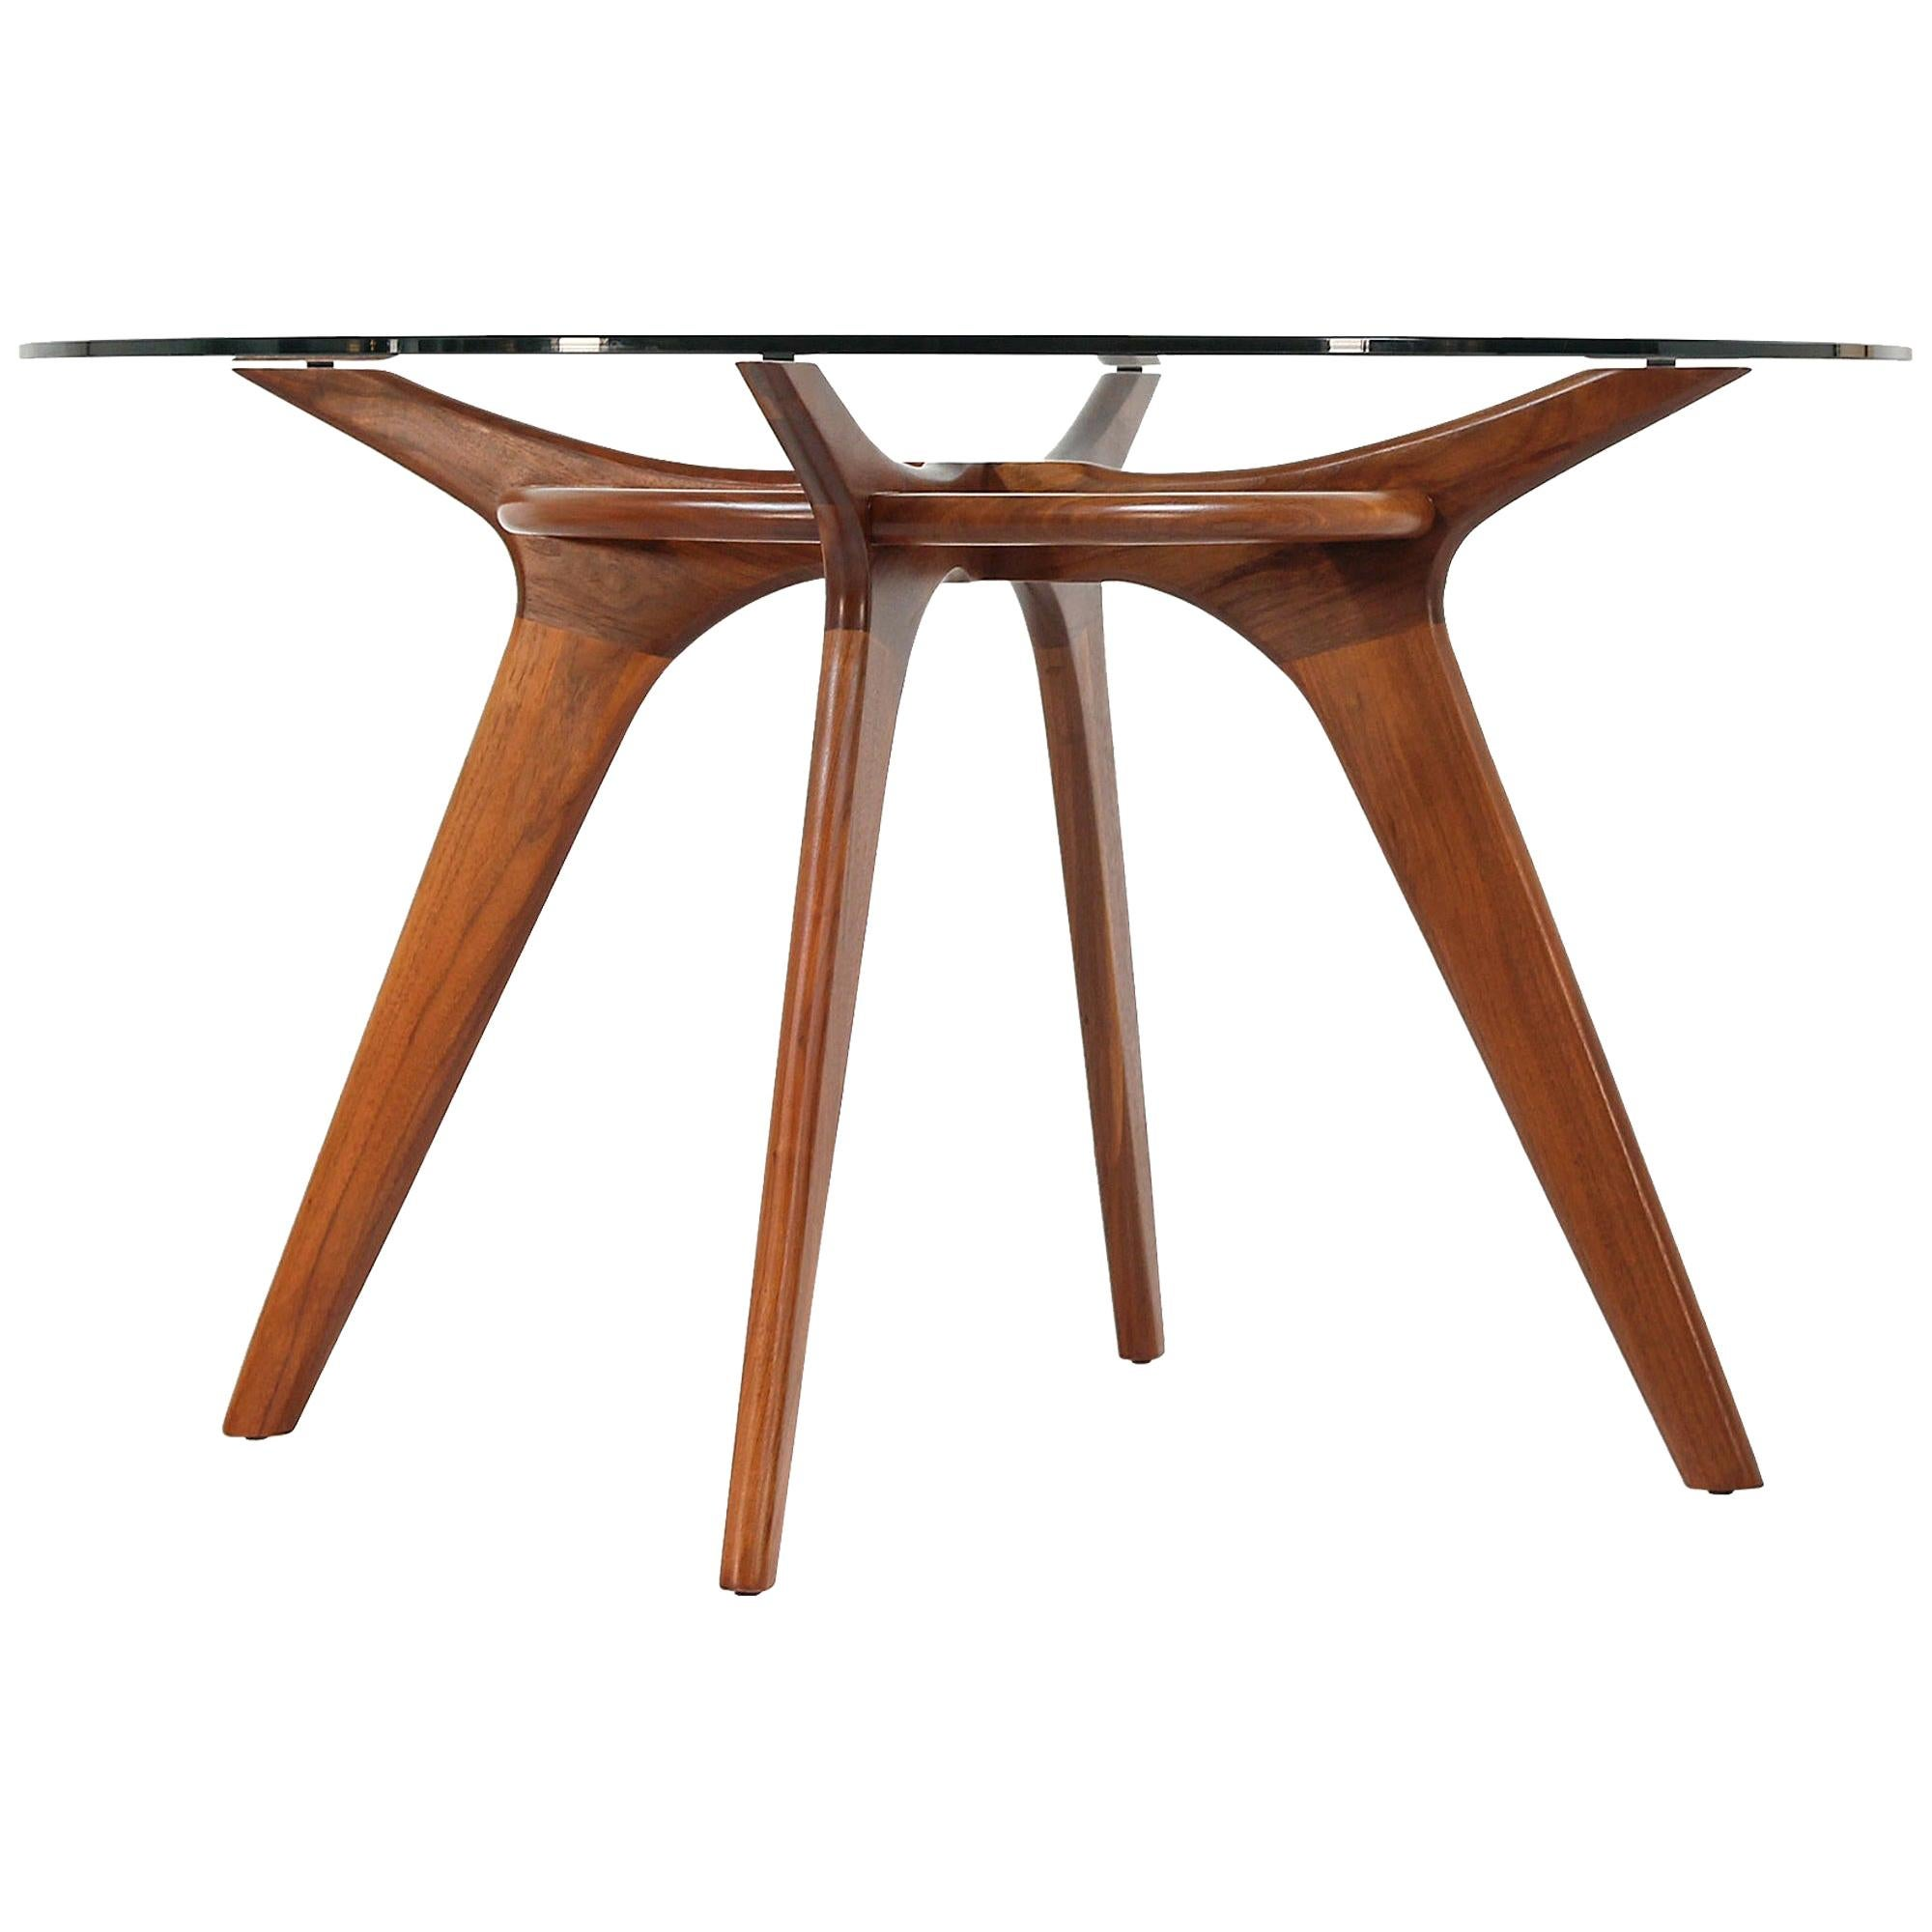 Adrian Pearsall Model 1135-T Dining Table for Craft Associates